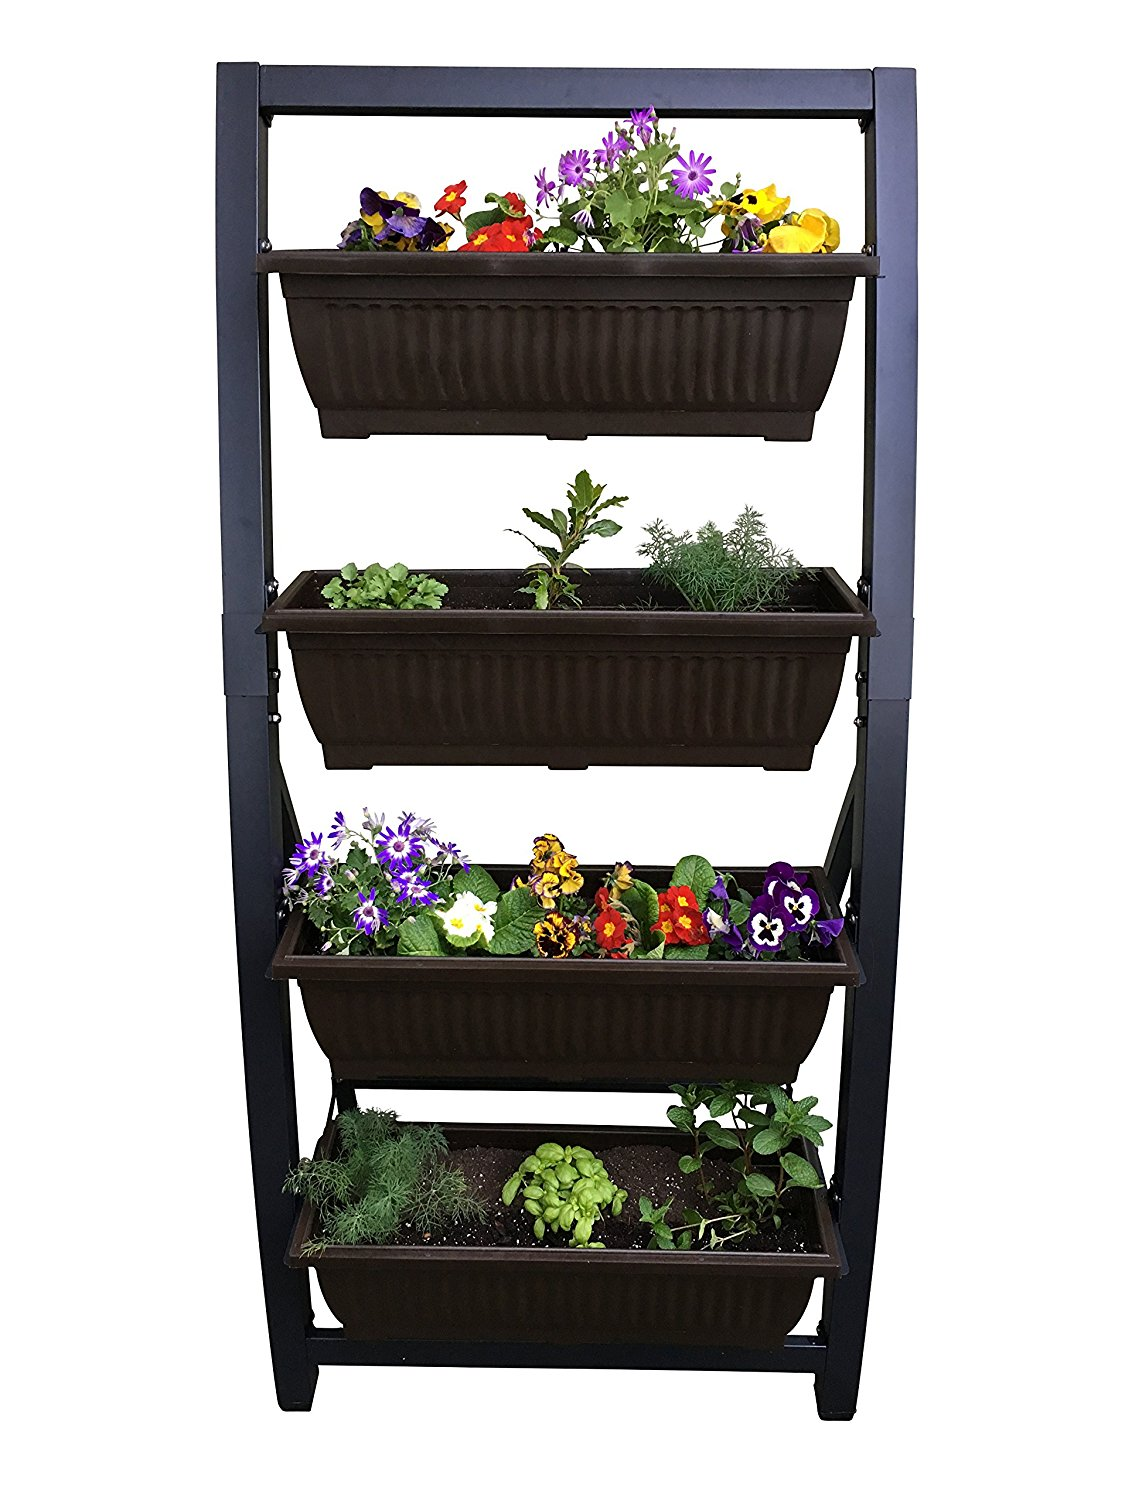 Outland Living 6-Ft Vertical Garden Freestanding Raised Elevated Bed Planter for Patio Yard Deck Balcony Cascading Water Drainage to Grow Vegetables Herbs Flowers Succulents, with 4 Container Boxes